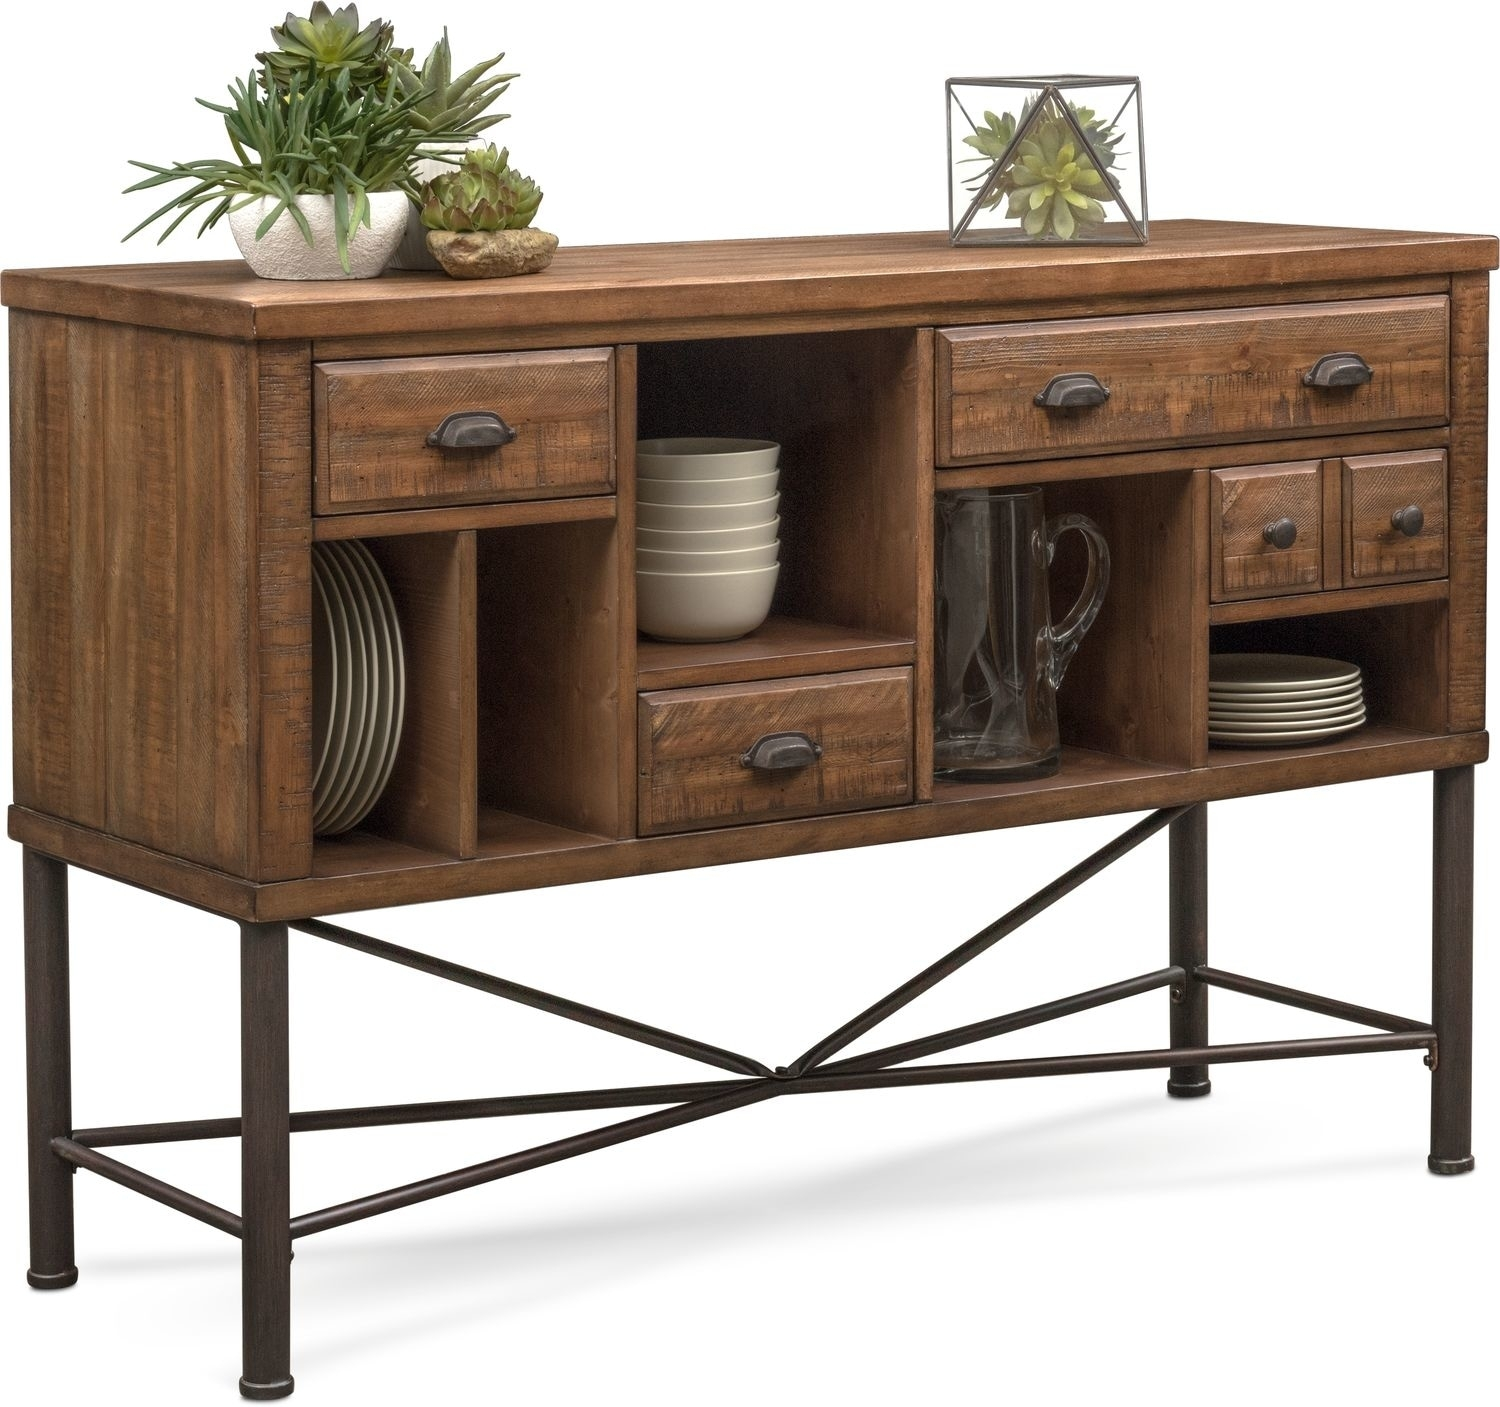 Bodhi Sideboard - Rustic Pine | American Signature Furniture with regard to Iron Pine Sideboards (Image 7 of 30)